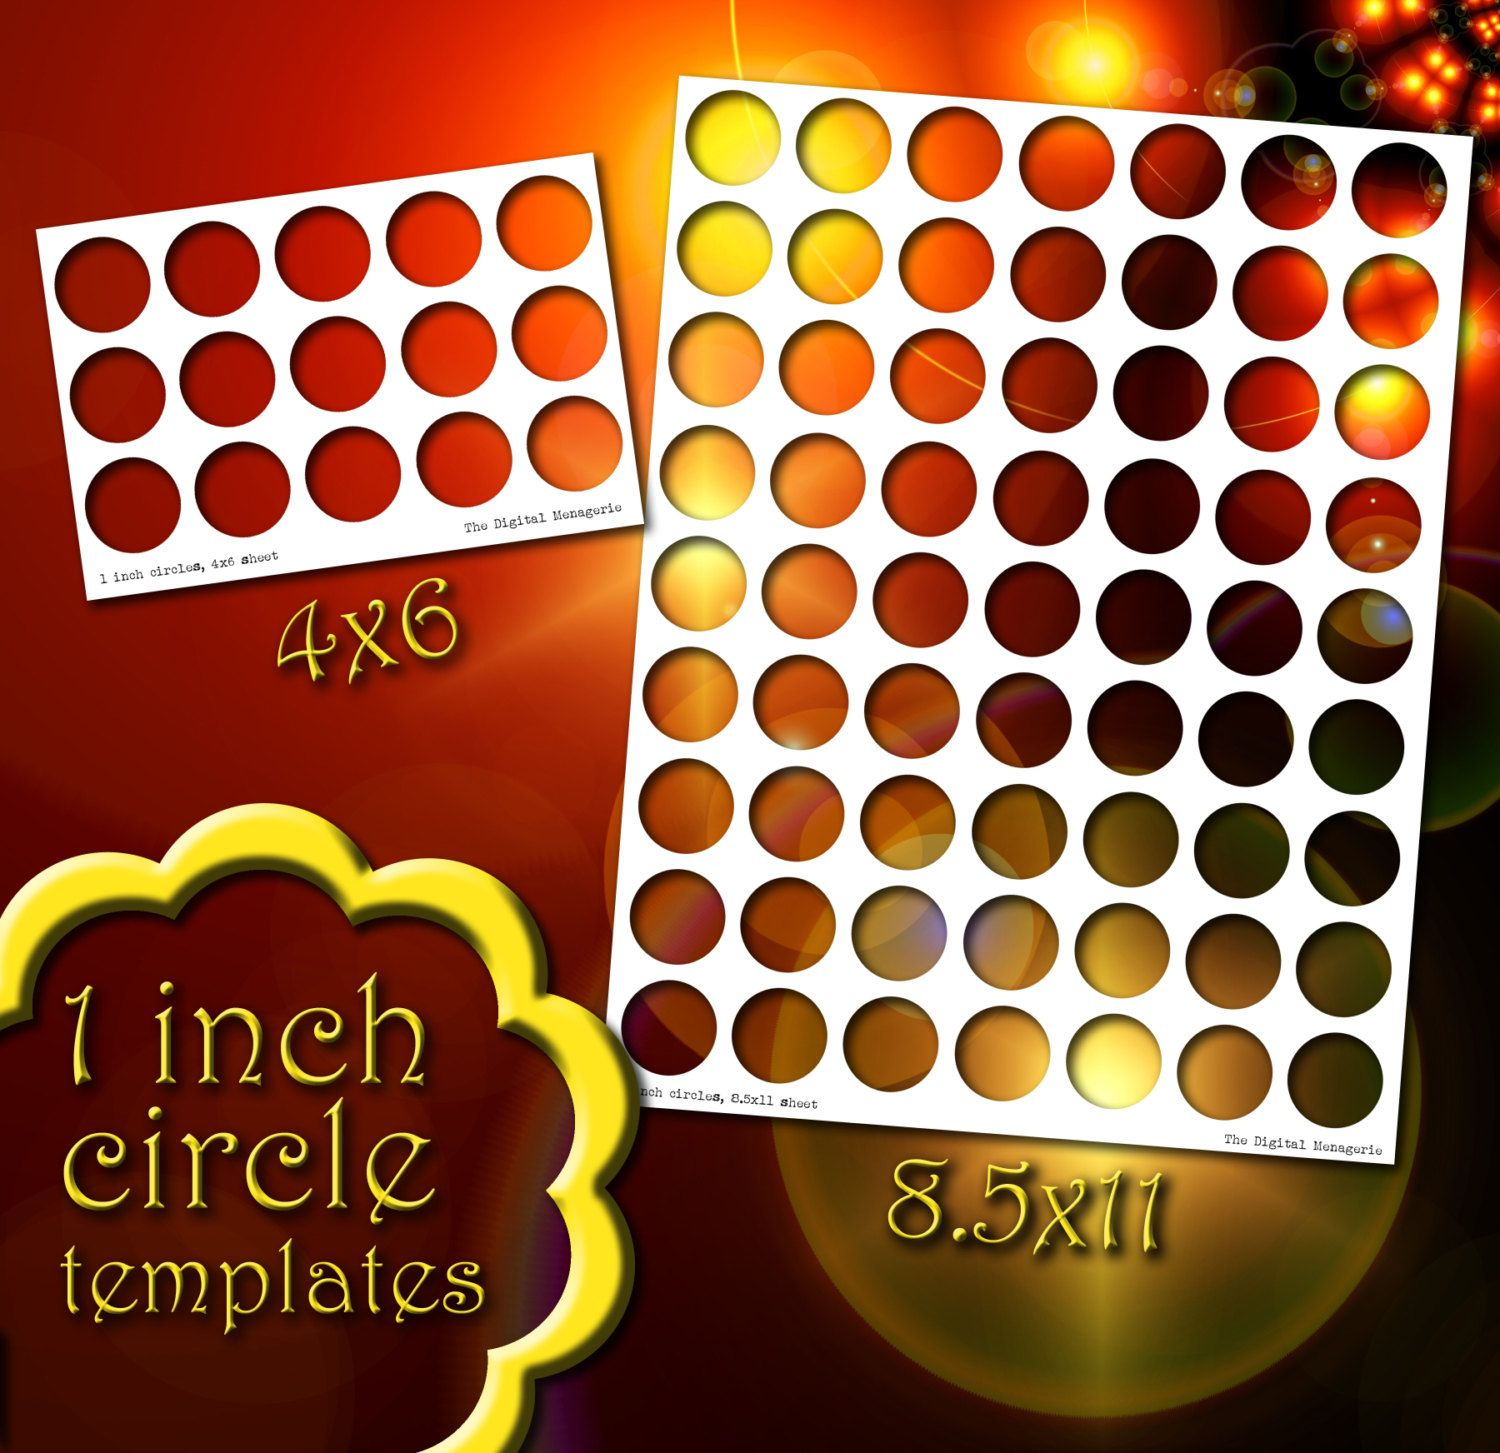 templates 1 inch circles 4x6 and 8 5x11 sheets png photoshop gimp